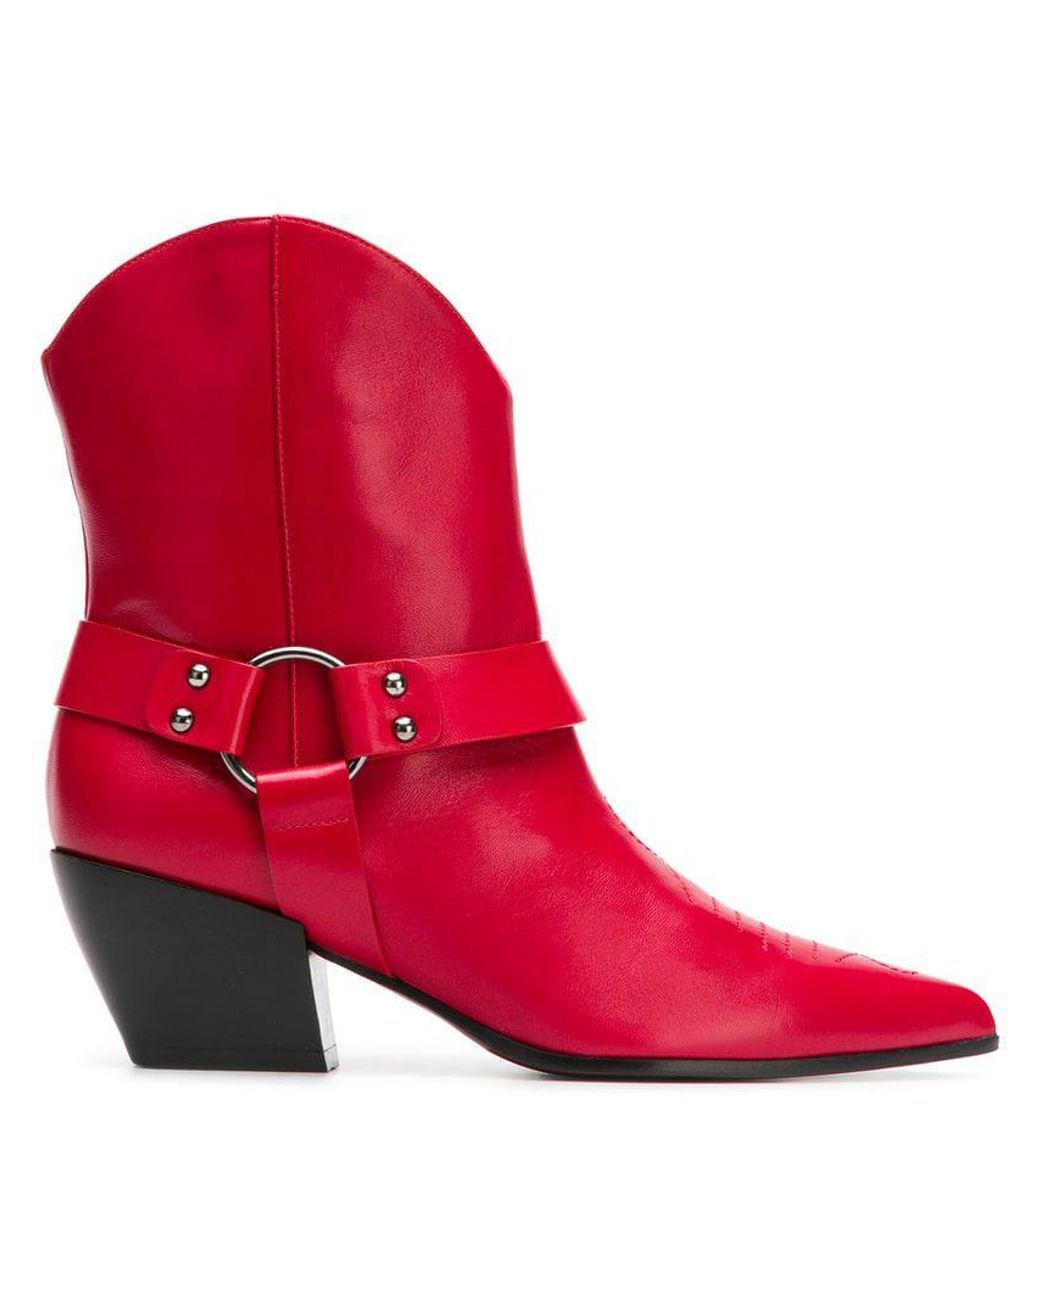 detailed look 7db30 0763a Women's Red Cuban Heel Ankle Boots